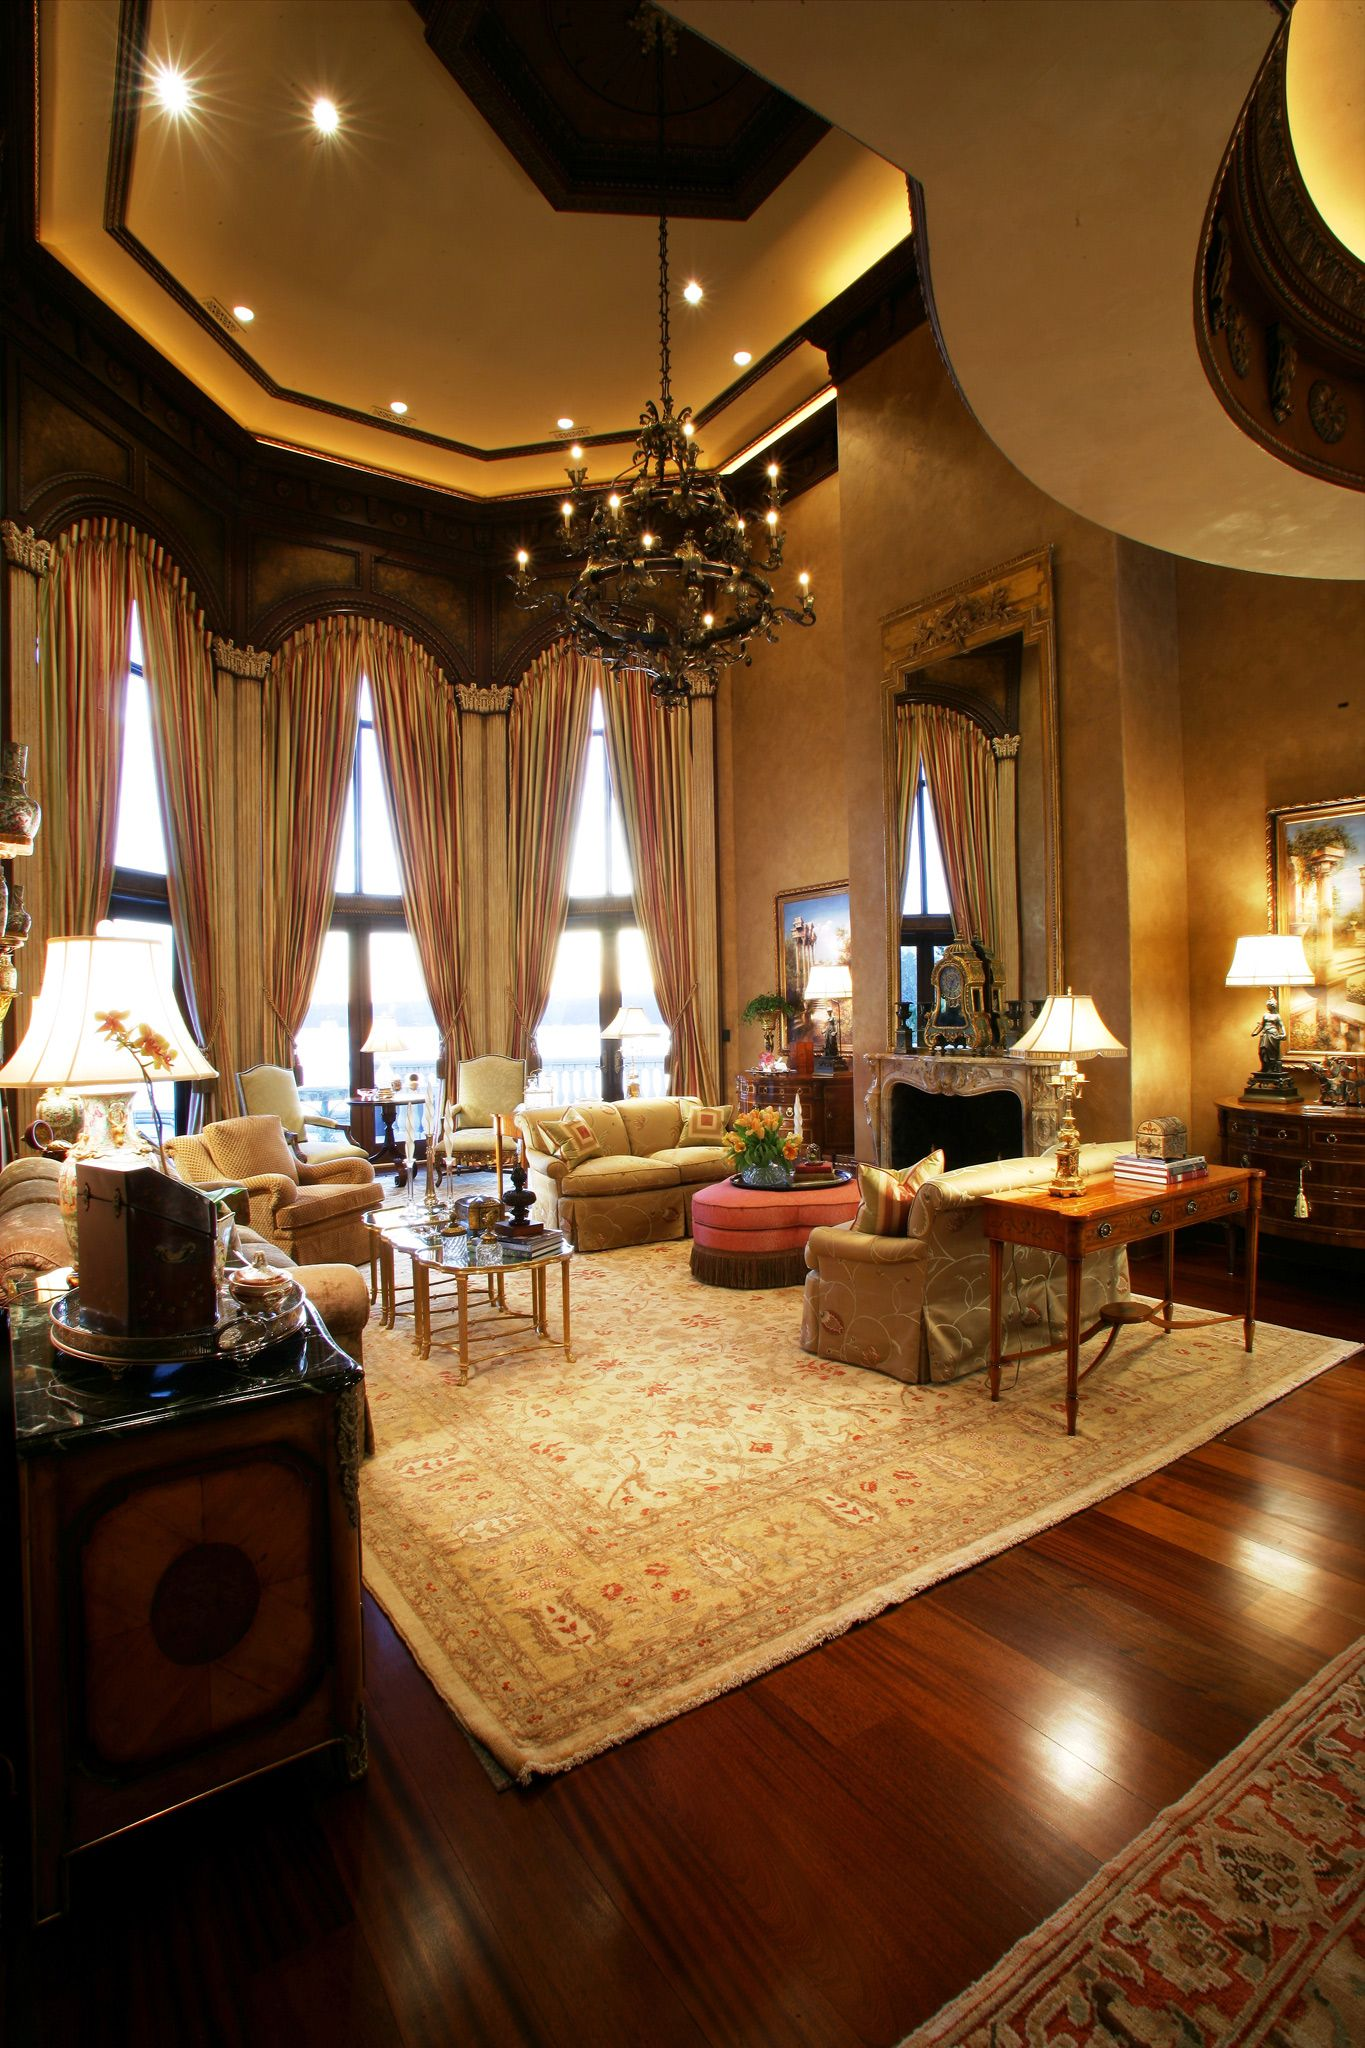 Fashioned Living Room Furniture: Dramatic Living Room; Multiple Floor Length Windows With